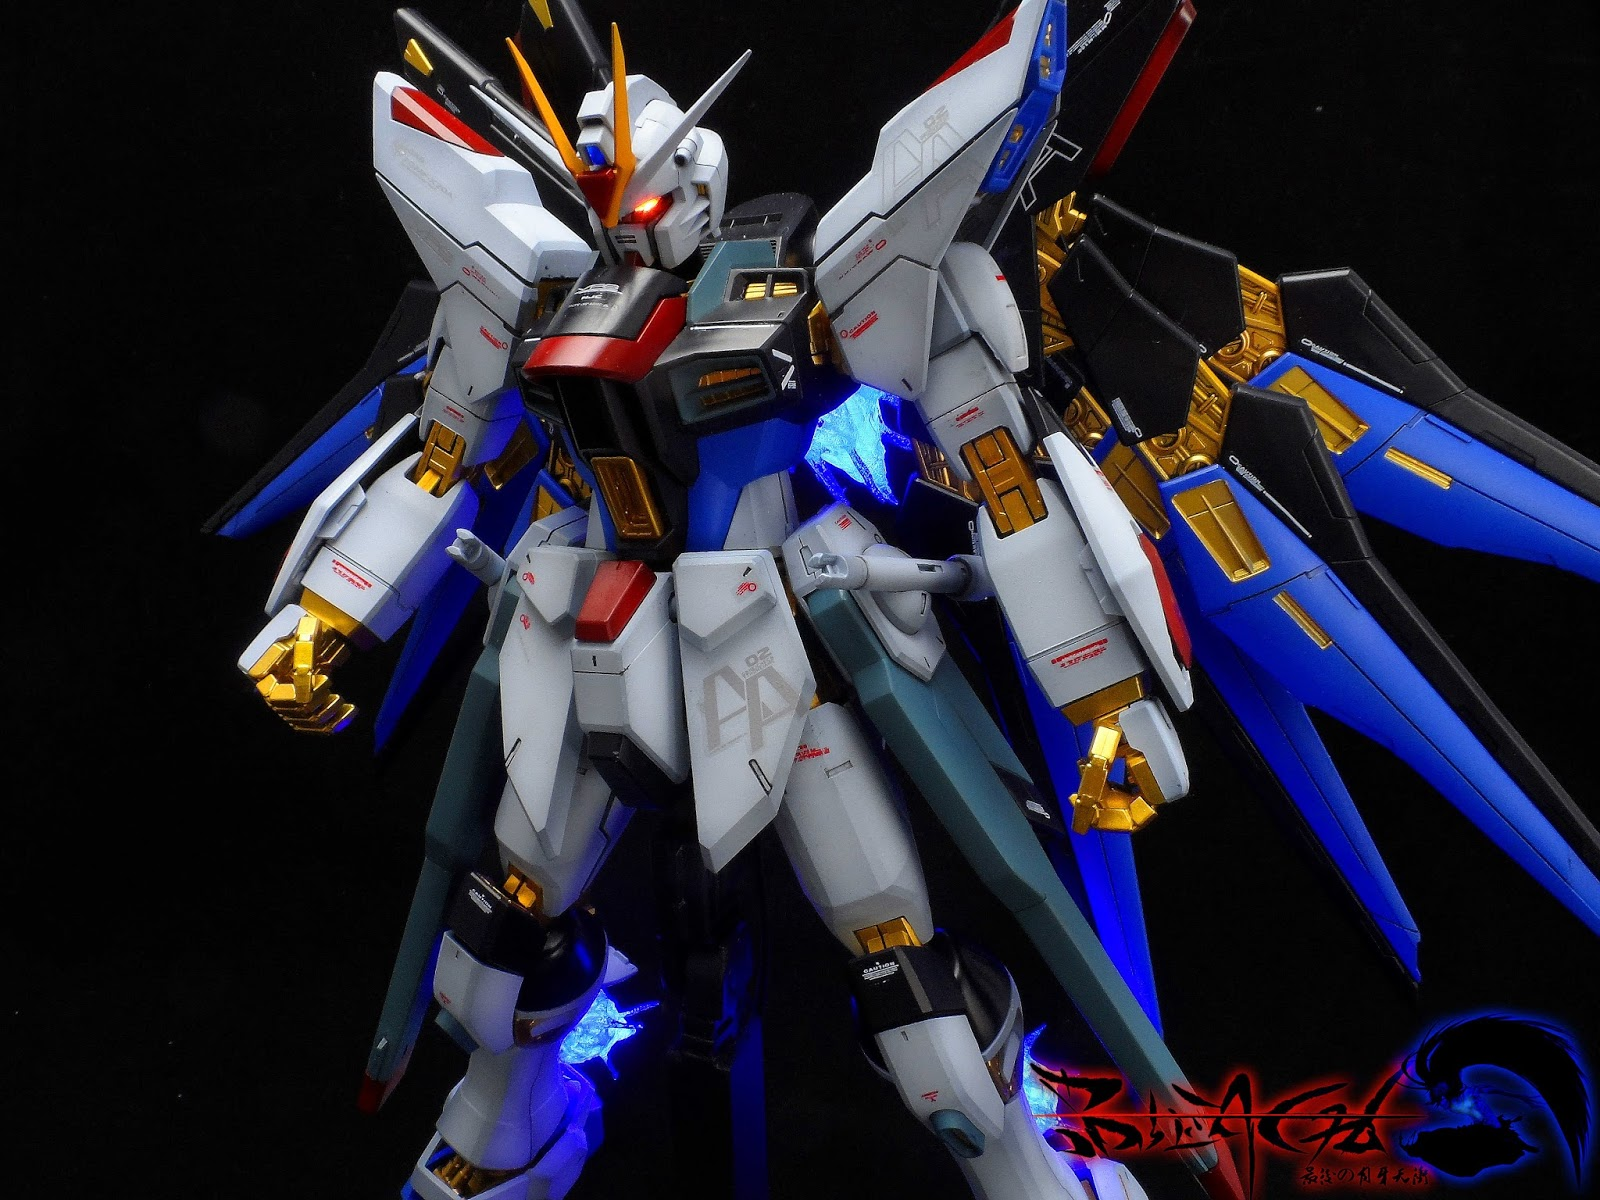 GUNDAM GUY: MG 1/100 Strike Freedom Gundam - Customized ...